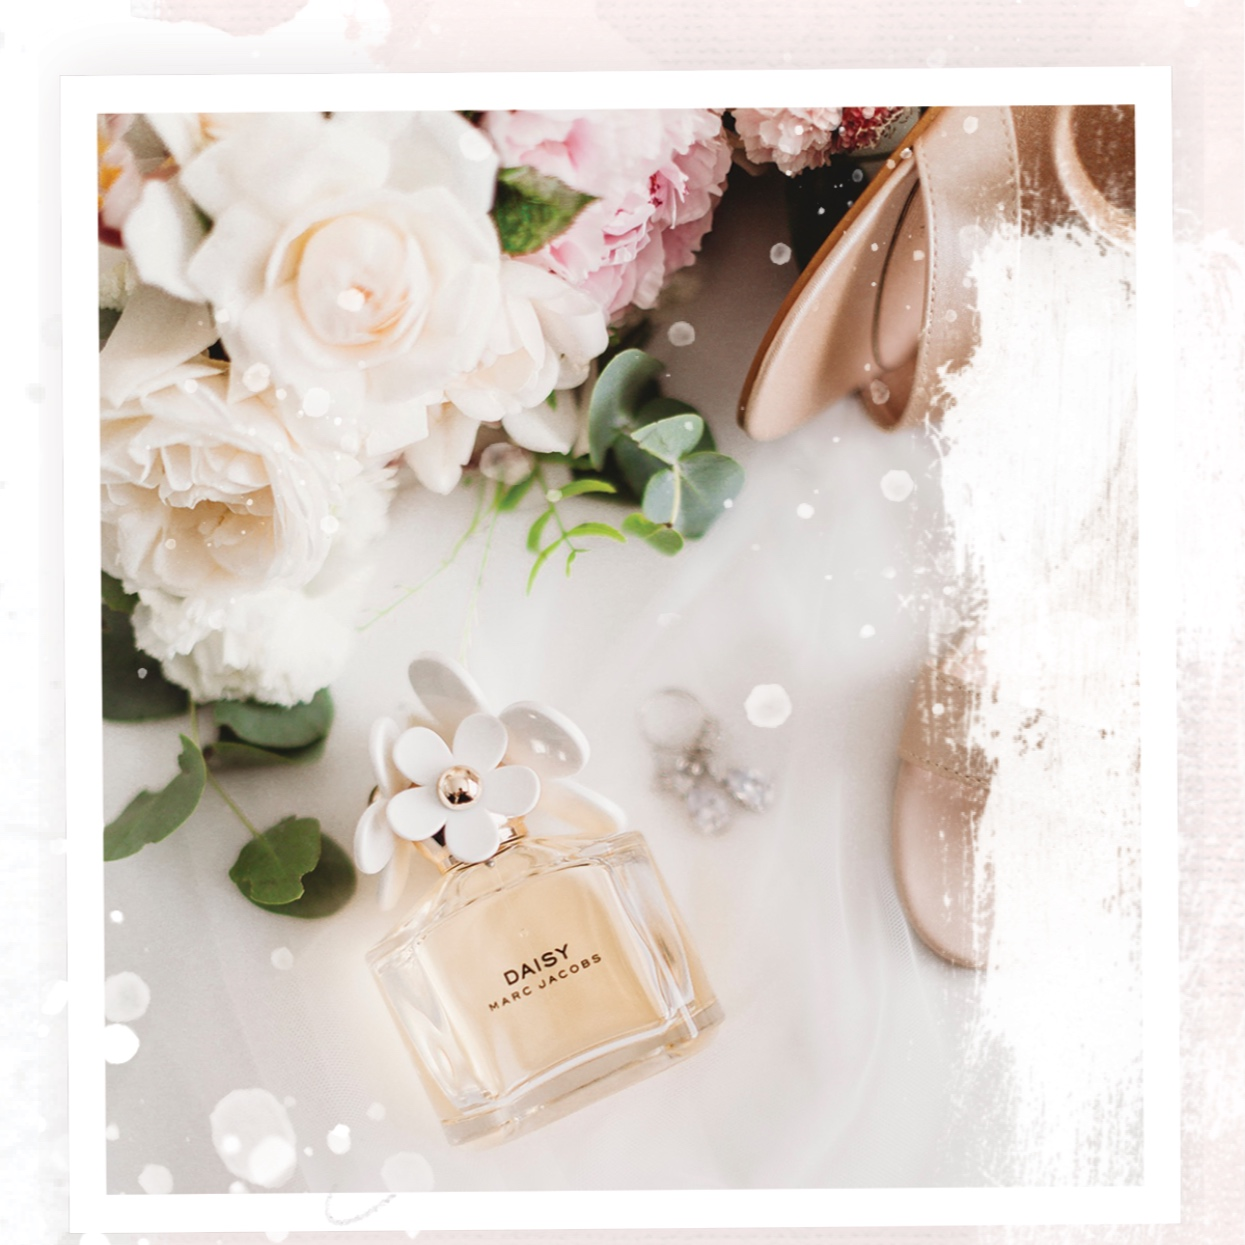 Gifts Sydney Wedding Photography Blog The Paper Fox